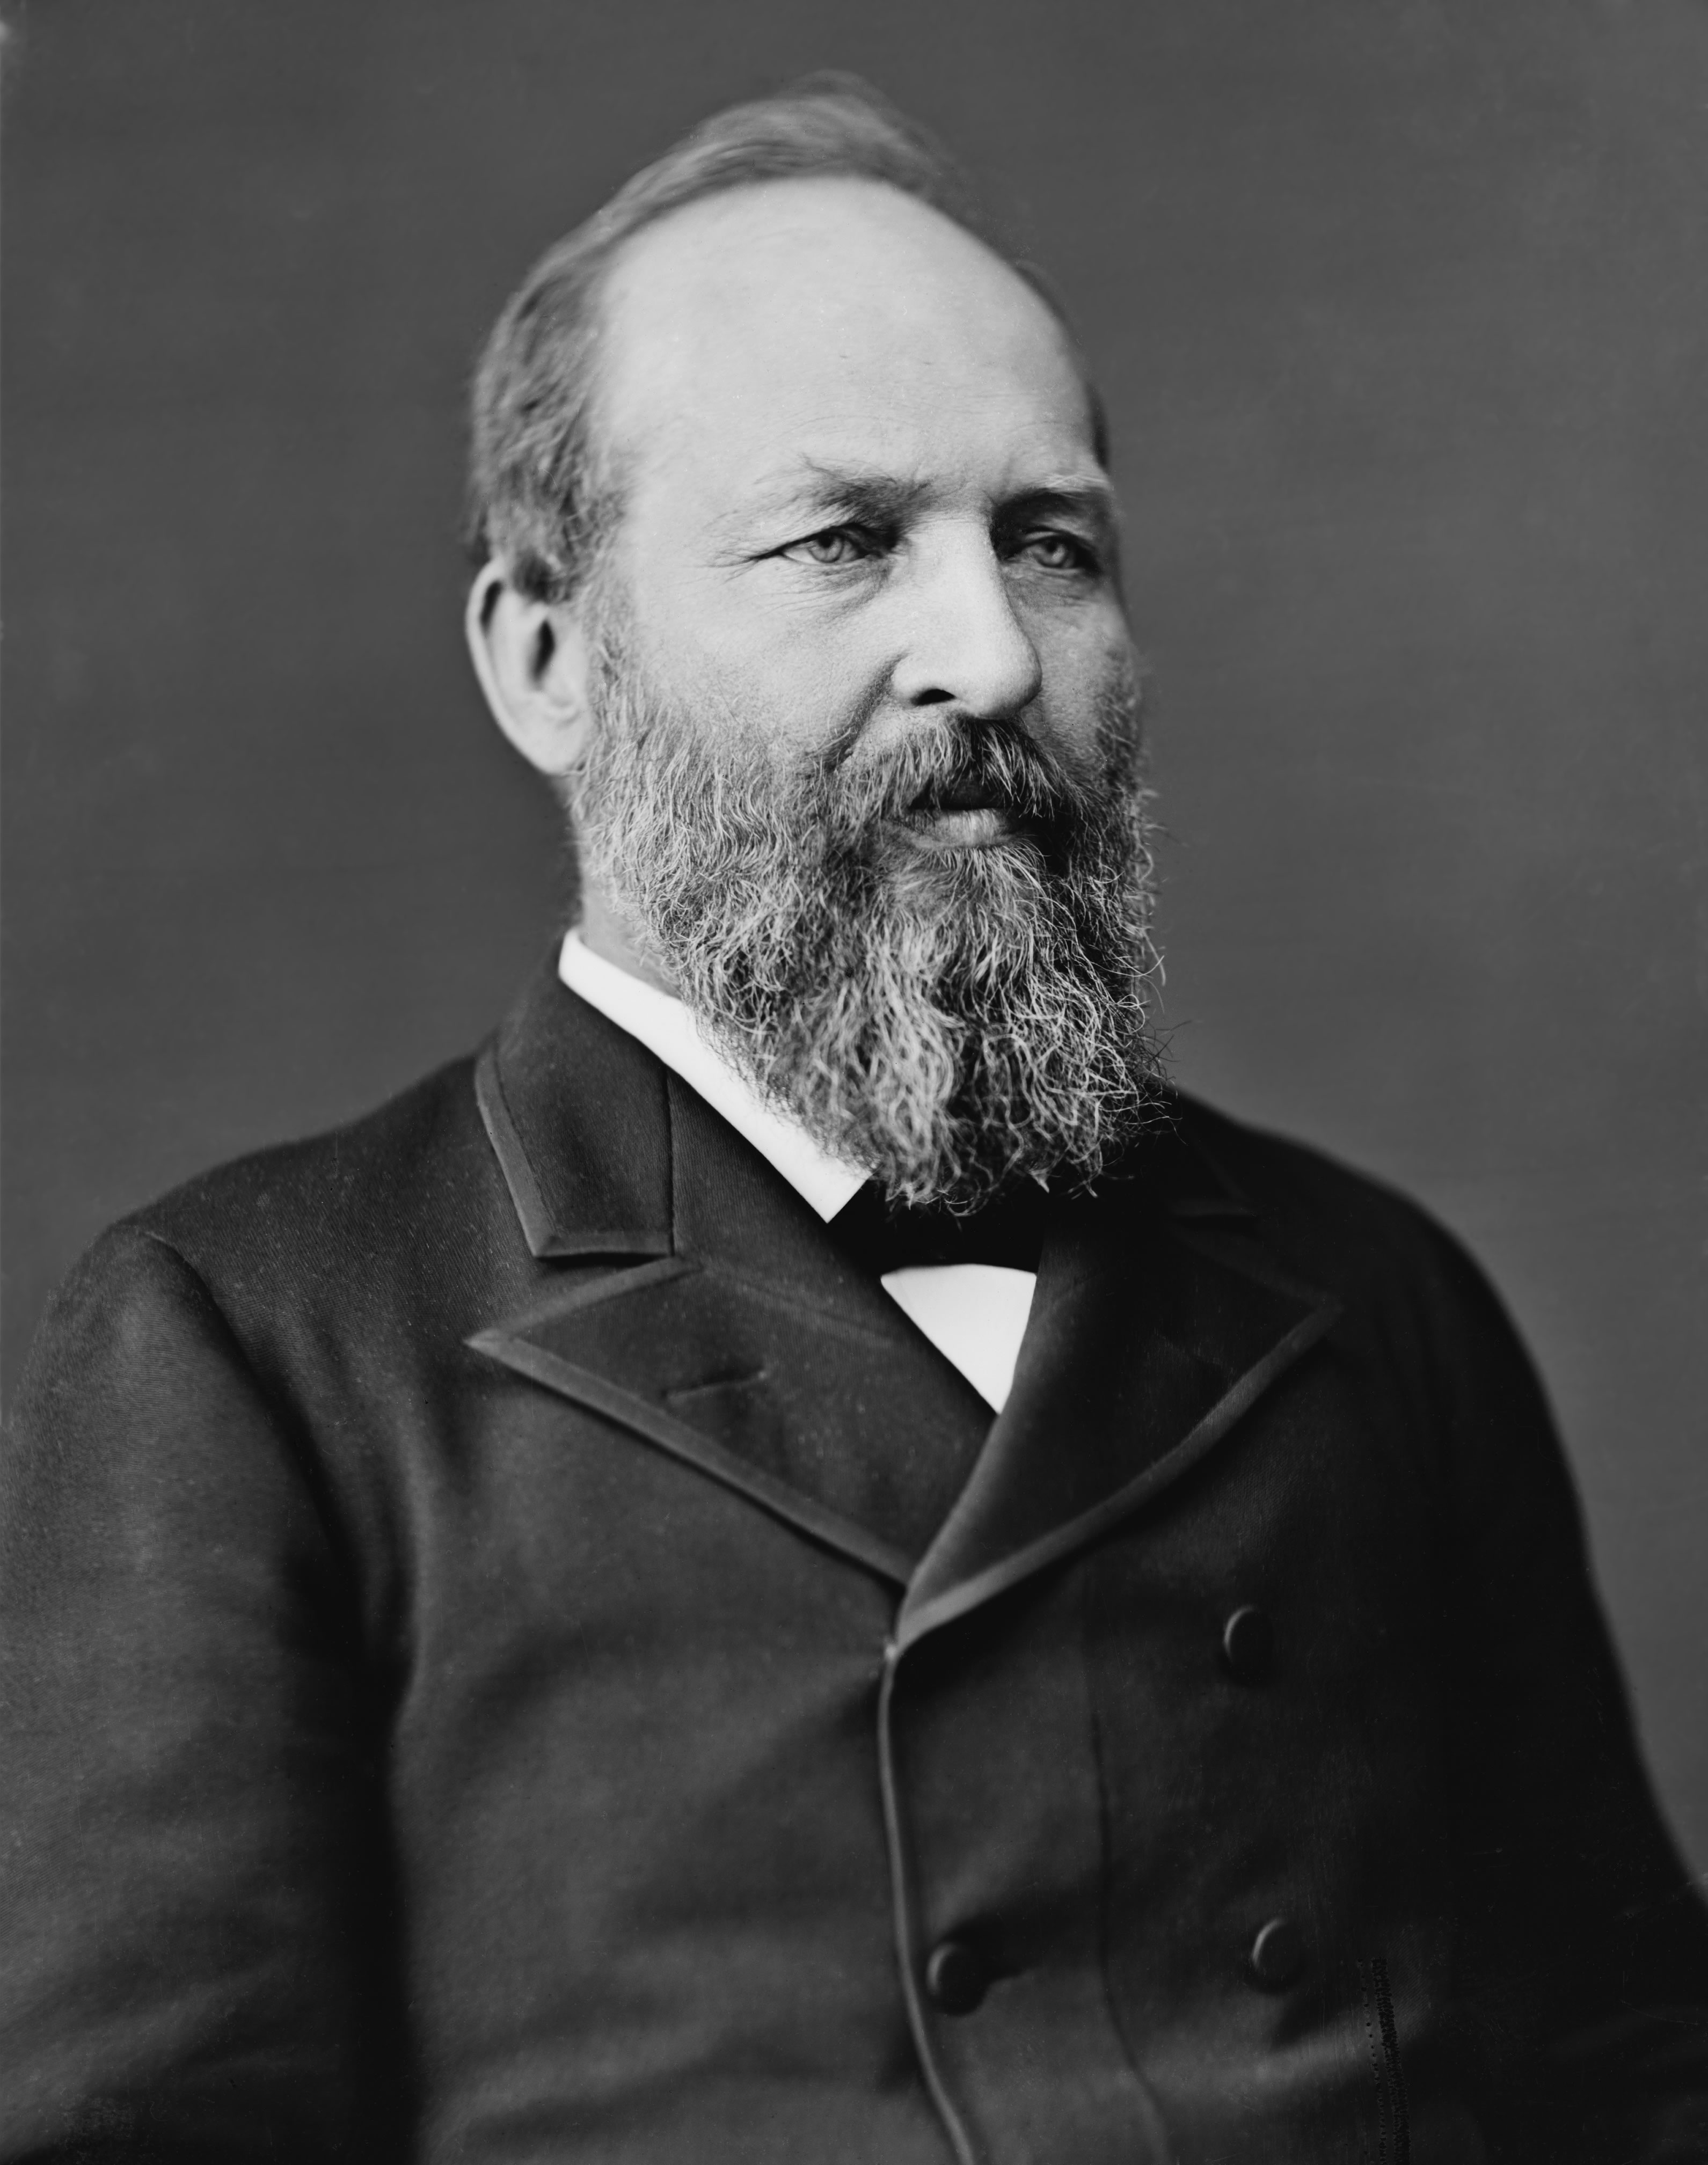 https://i1.wp.com/upload.wikimedia.org/wikipedia/commons/1/1f/James_Abram_Garfield,_photo_portrait_seated.jpg